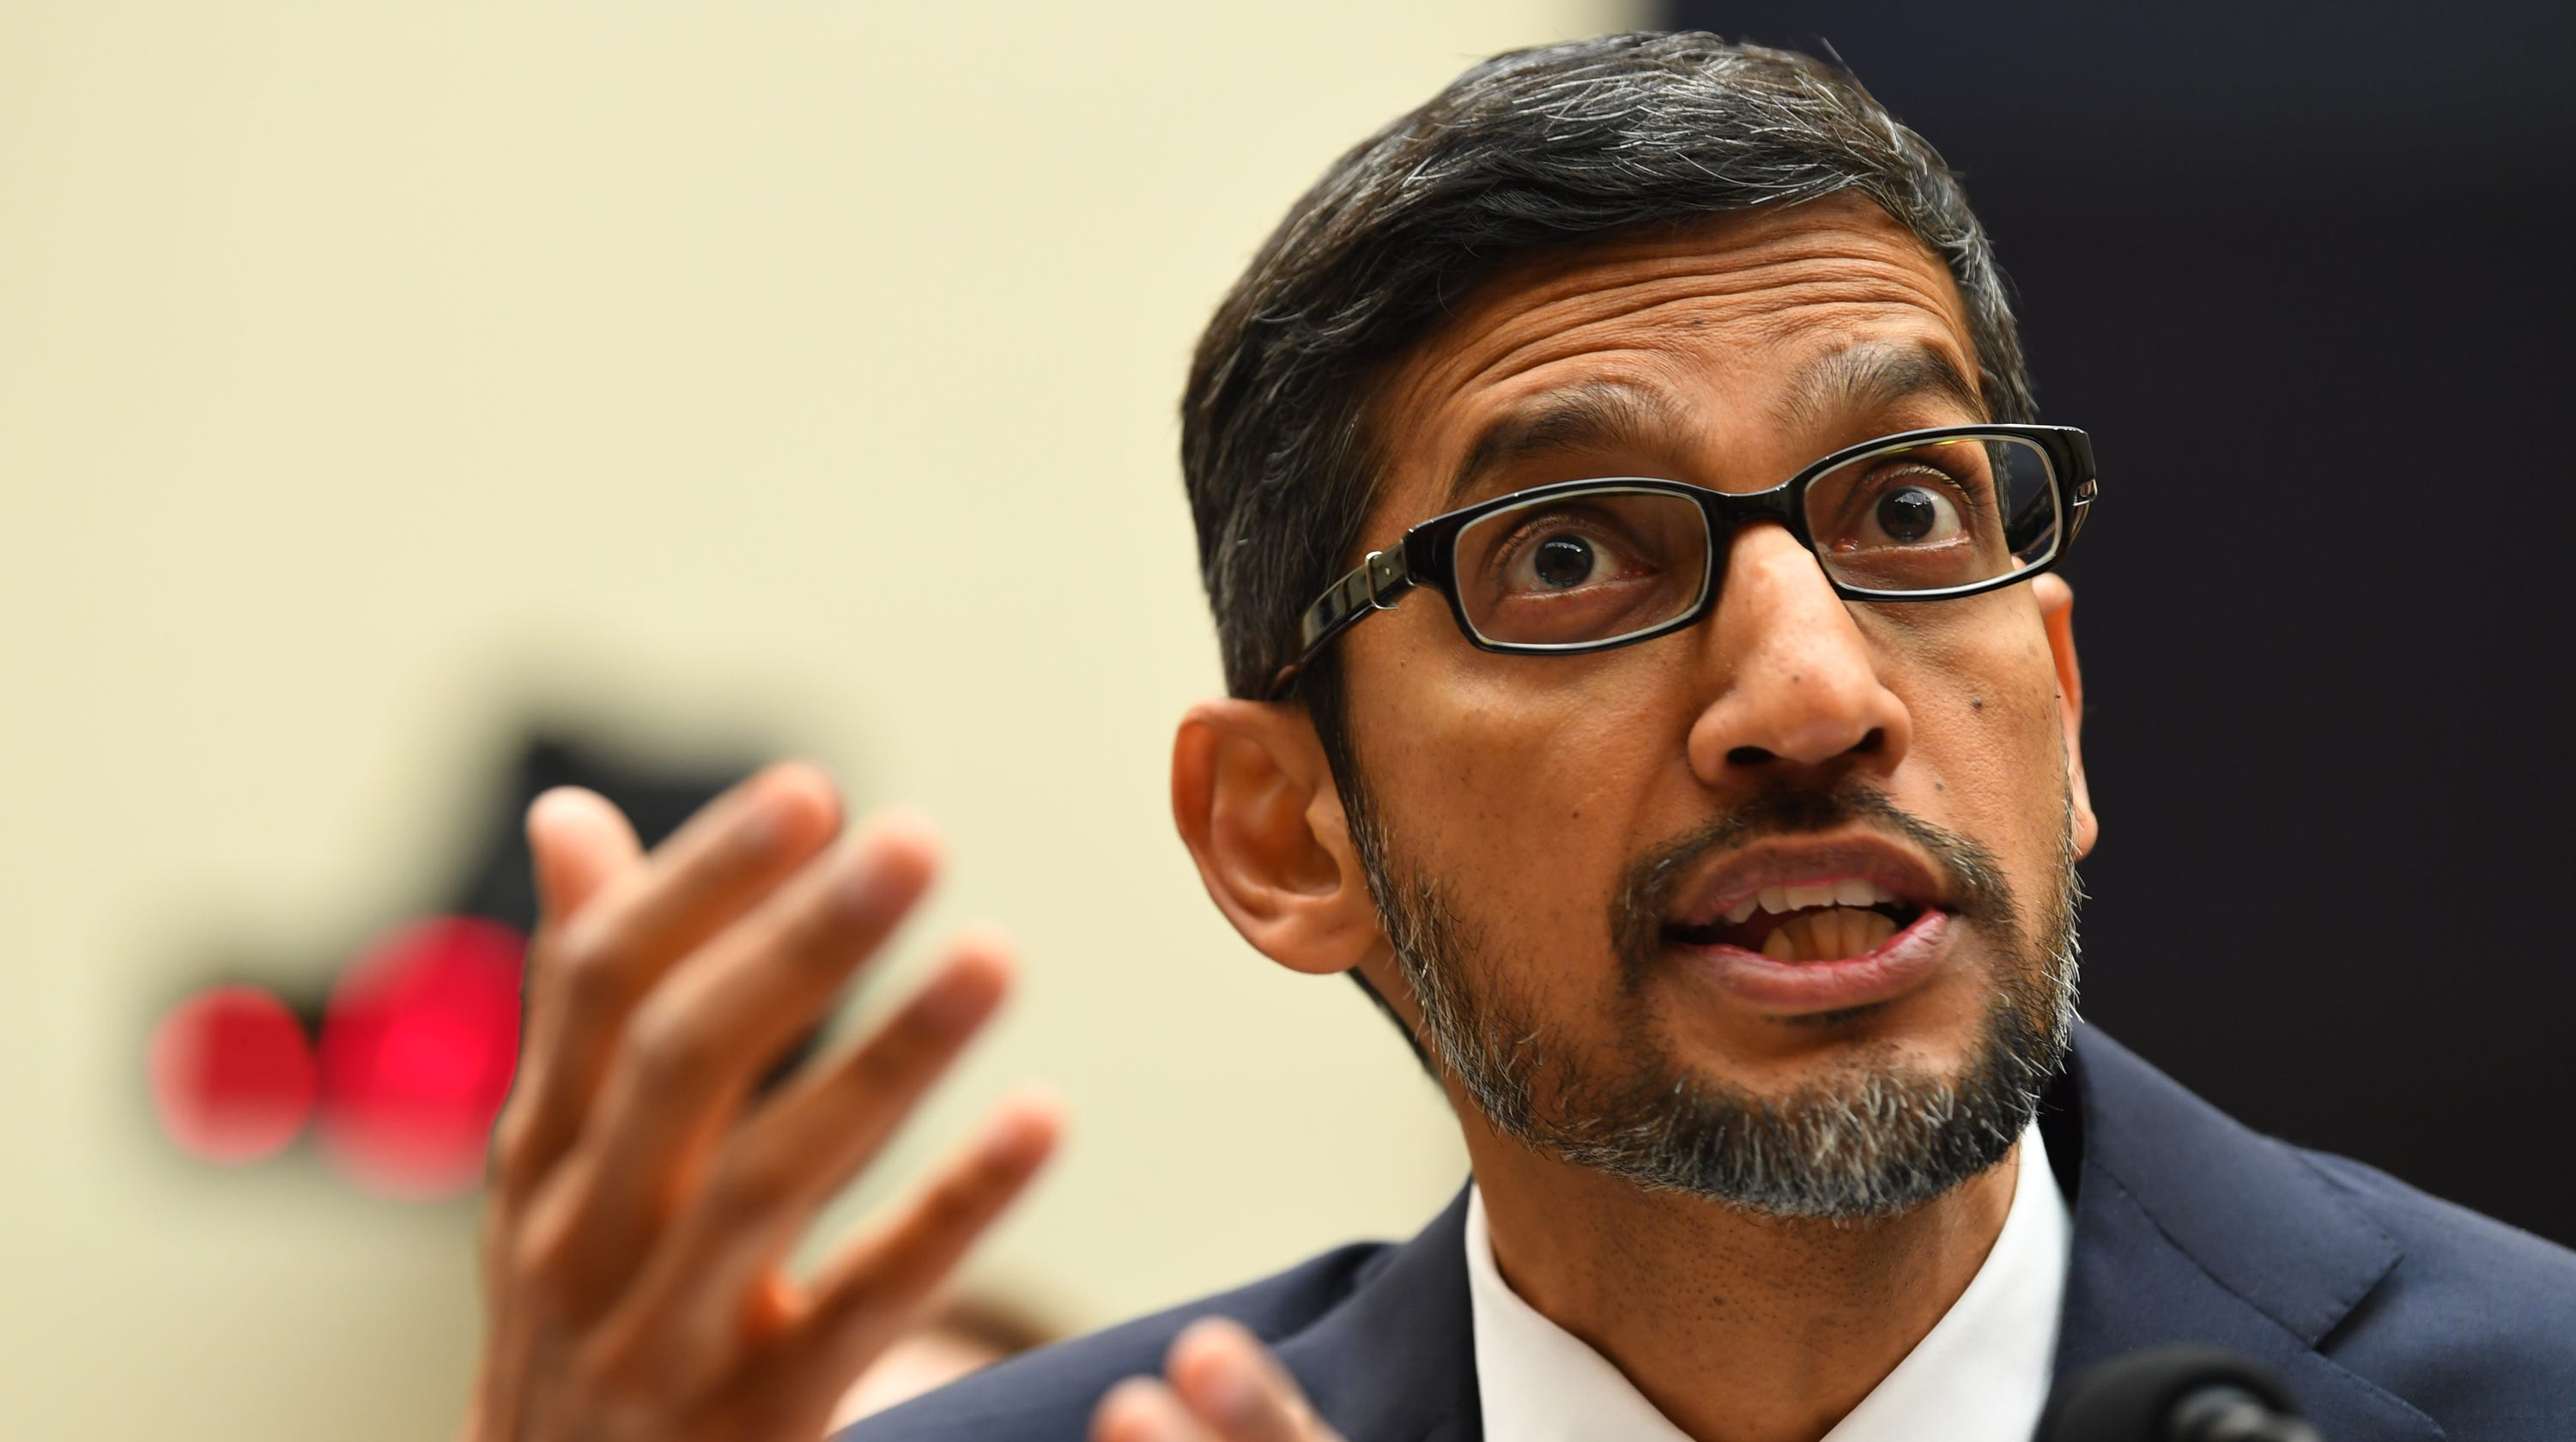 'Offensive and embarrassing': Senators struggle to pronounce Google CEO Sundar Pichai's name correctly – USA TODAY